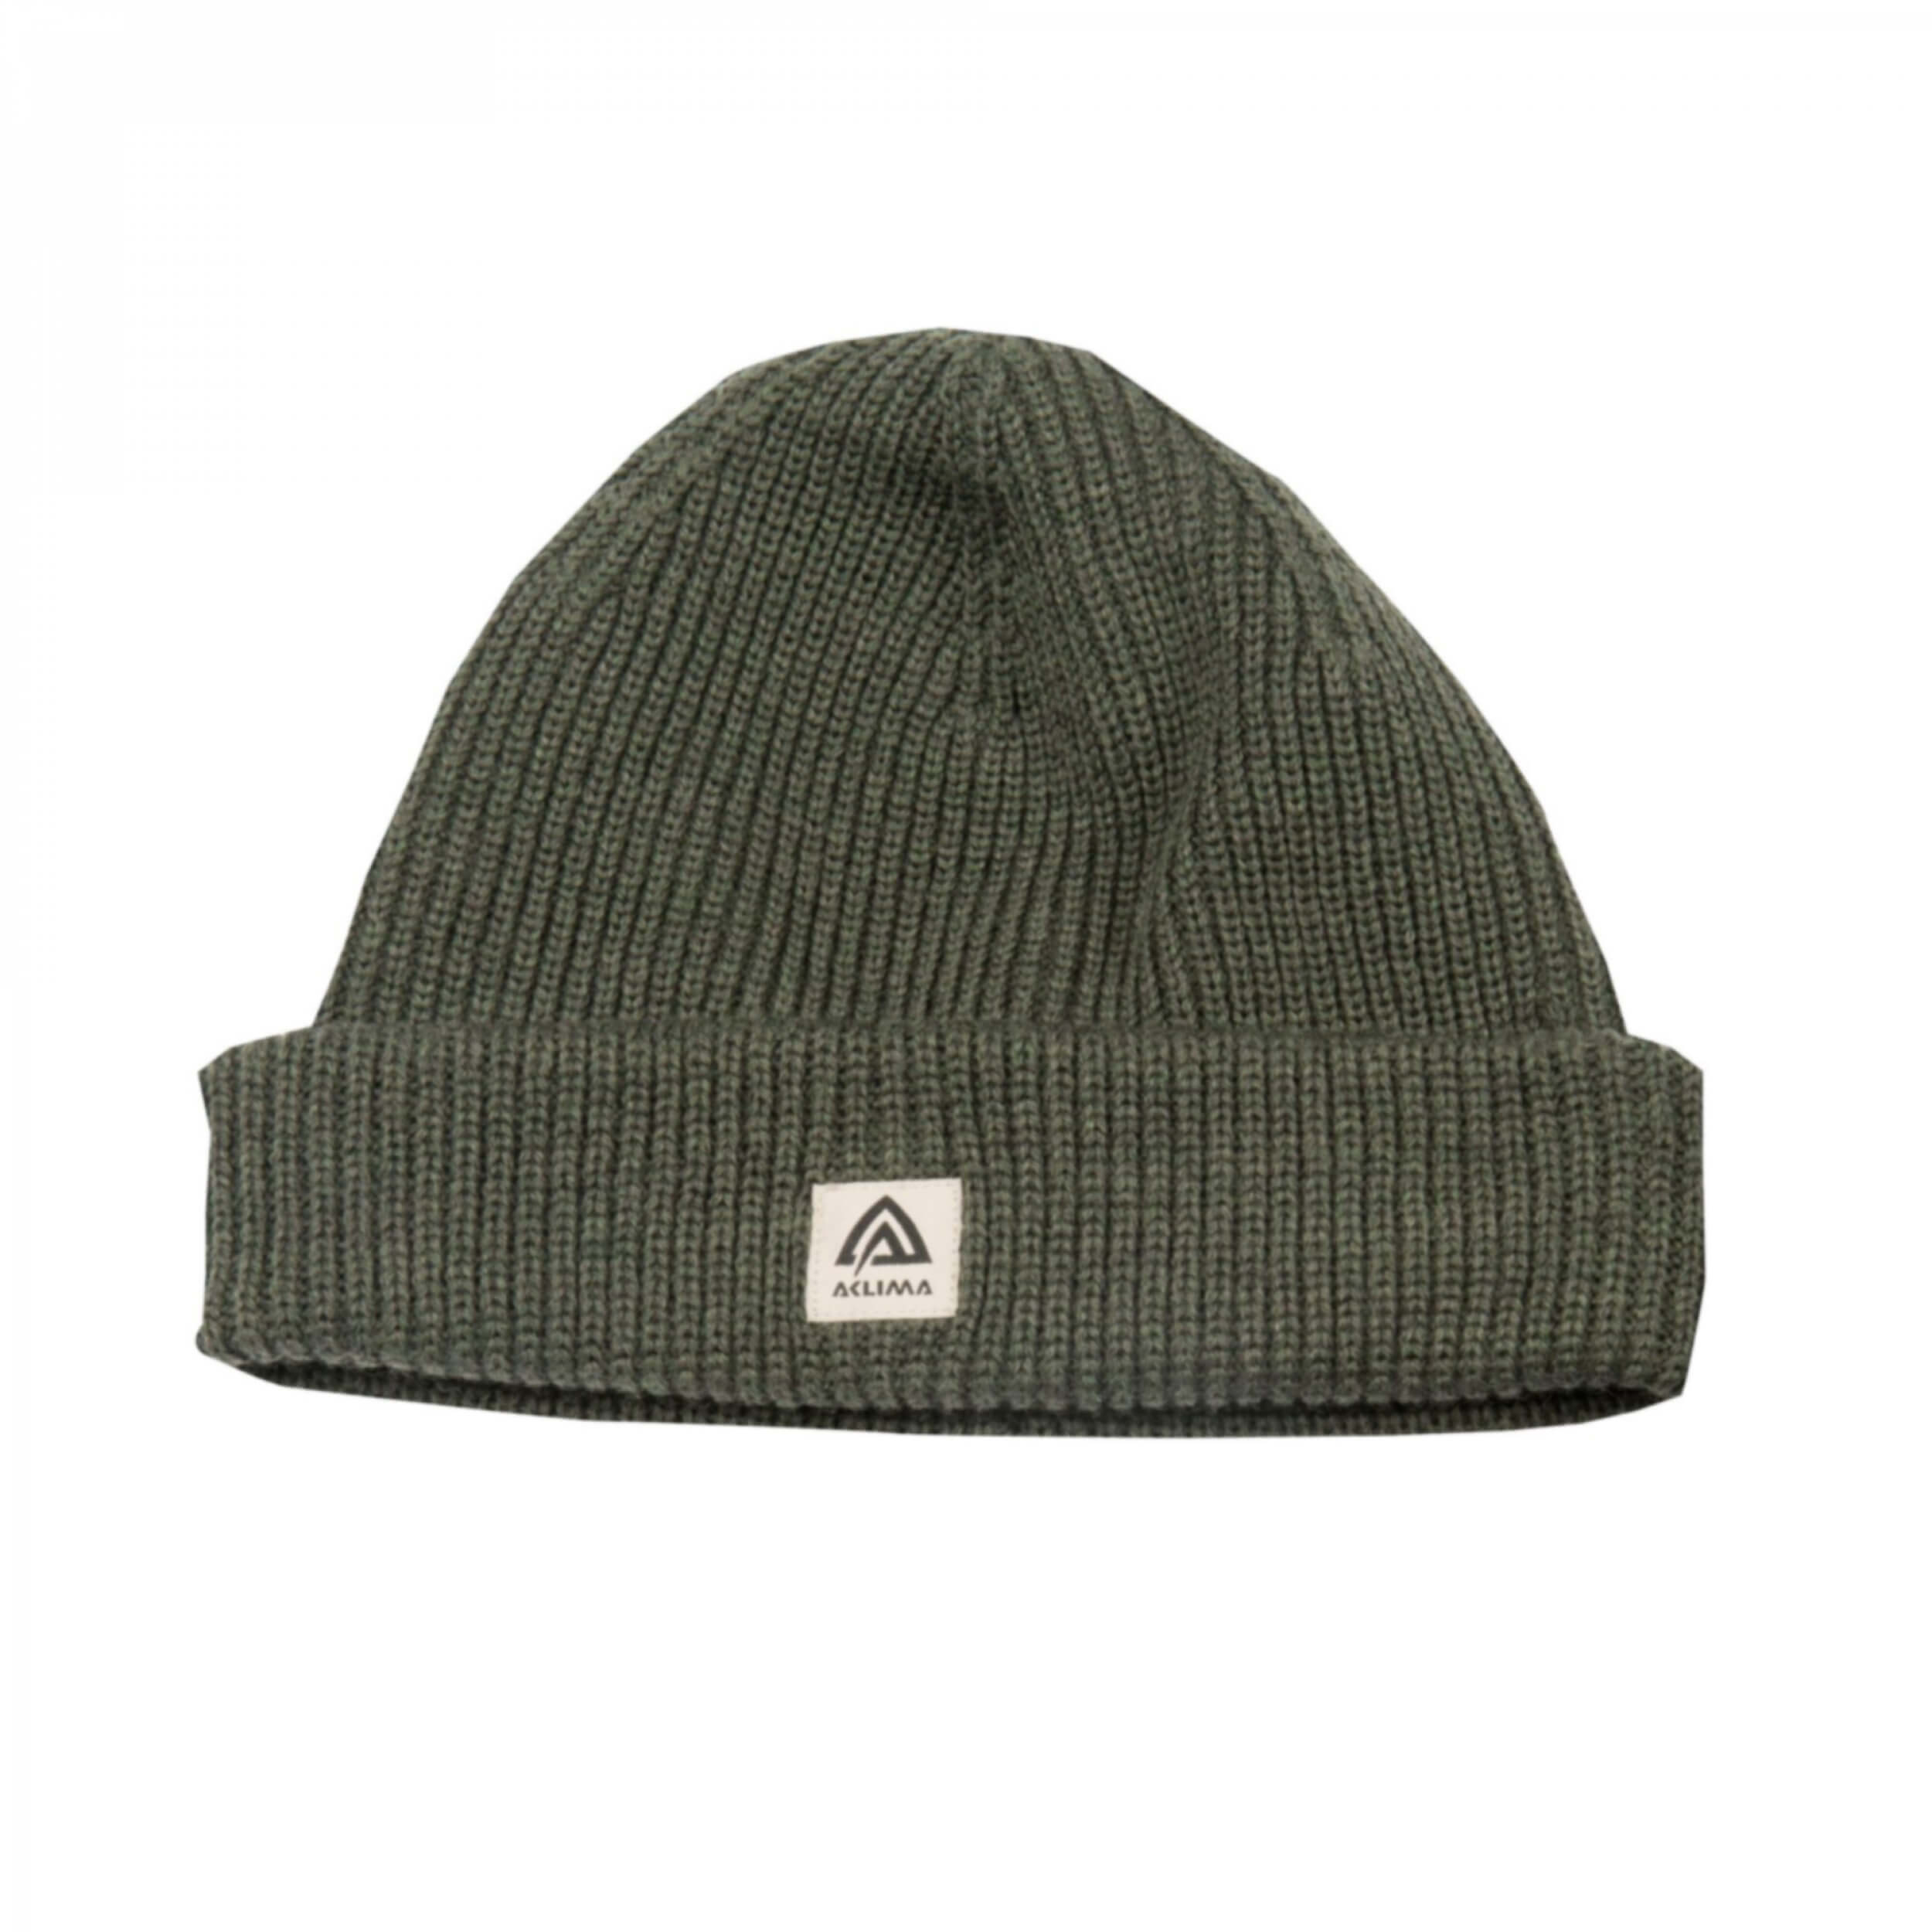 Aclima Forester Cap olive night